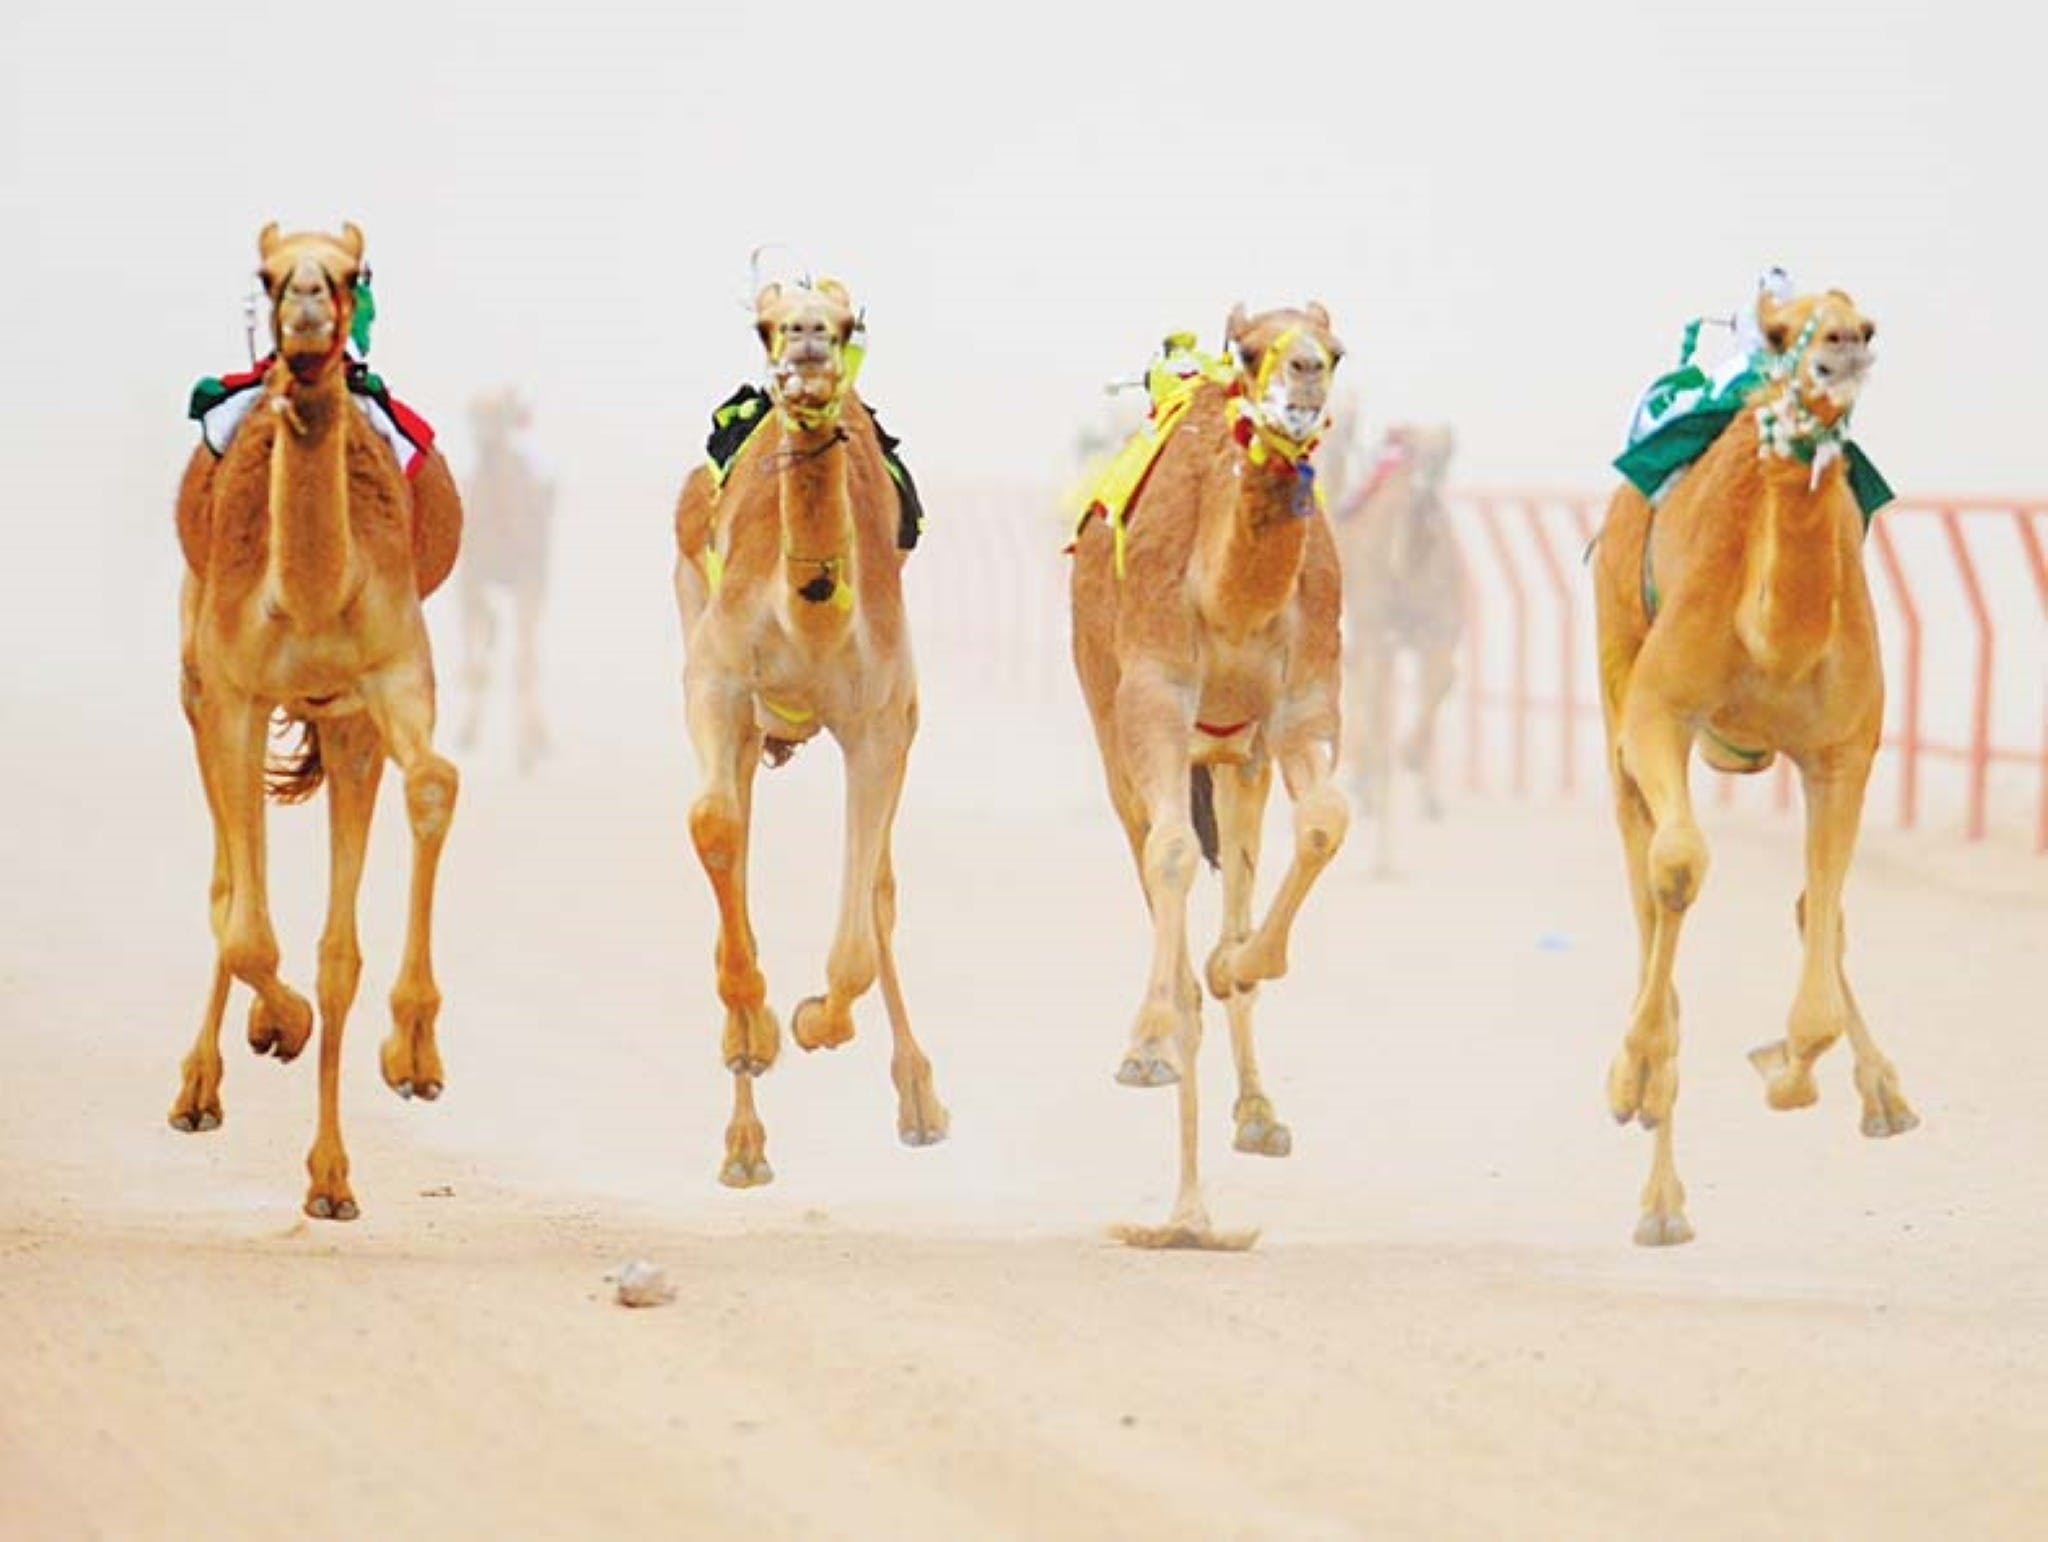 The Quirindi Camel Cup - Tourism Cairns